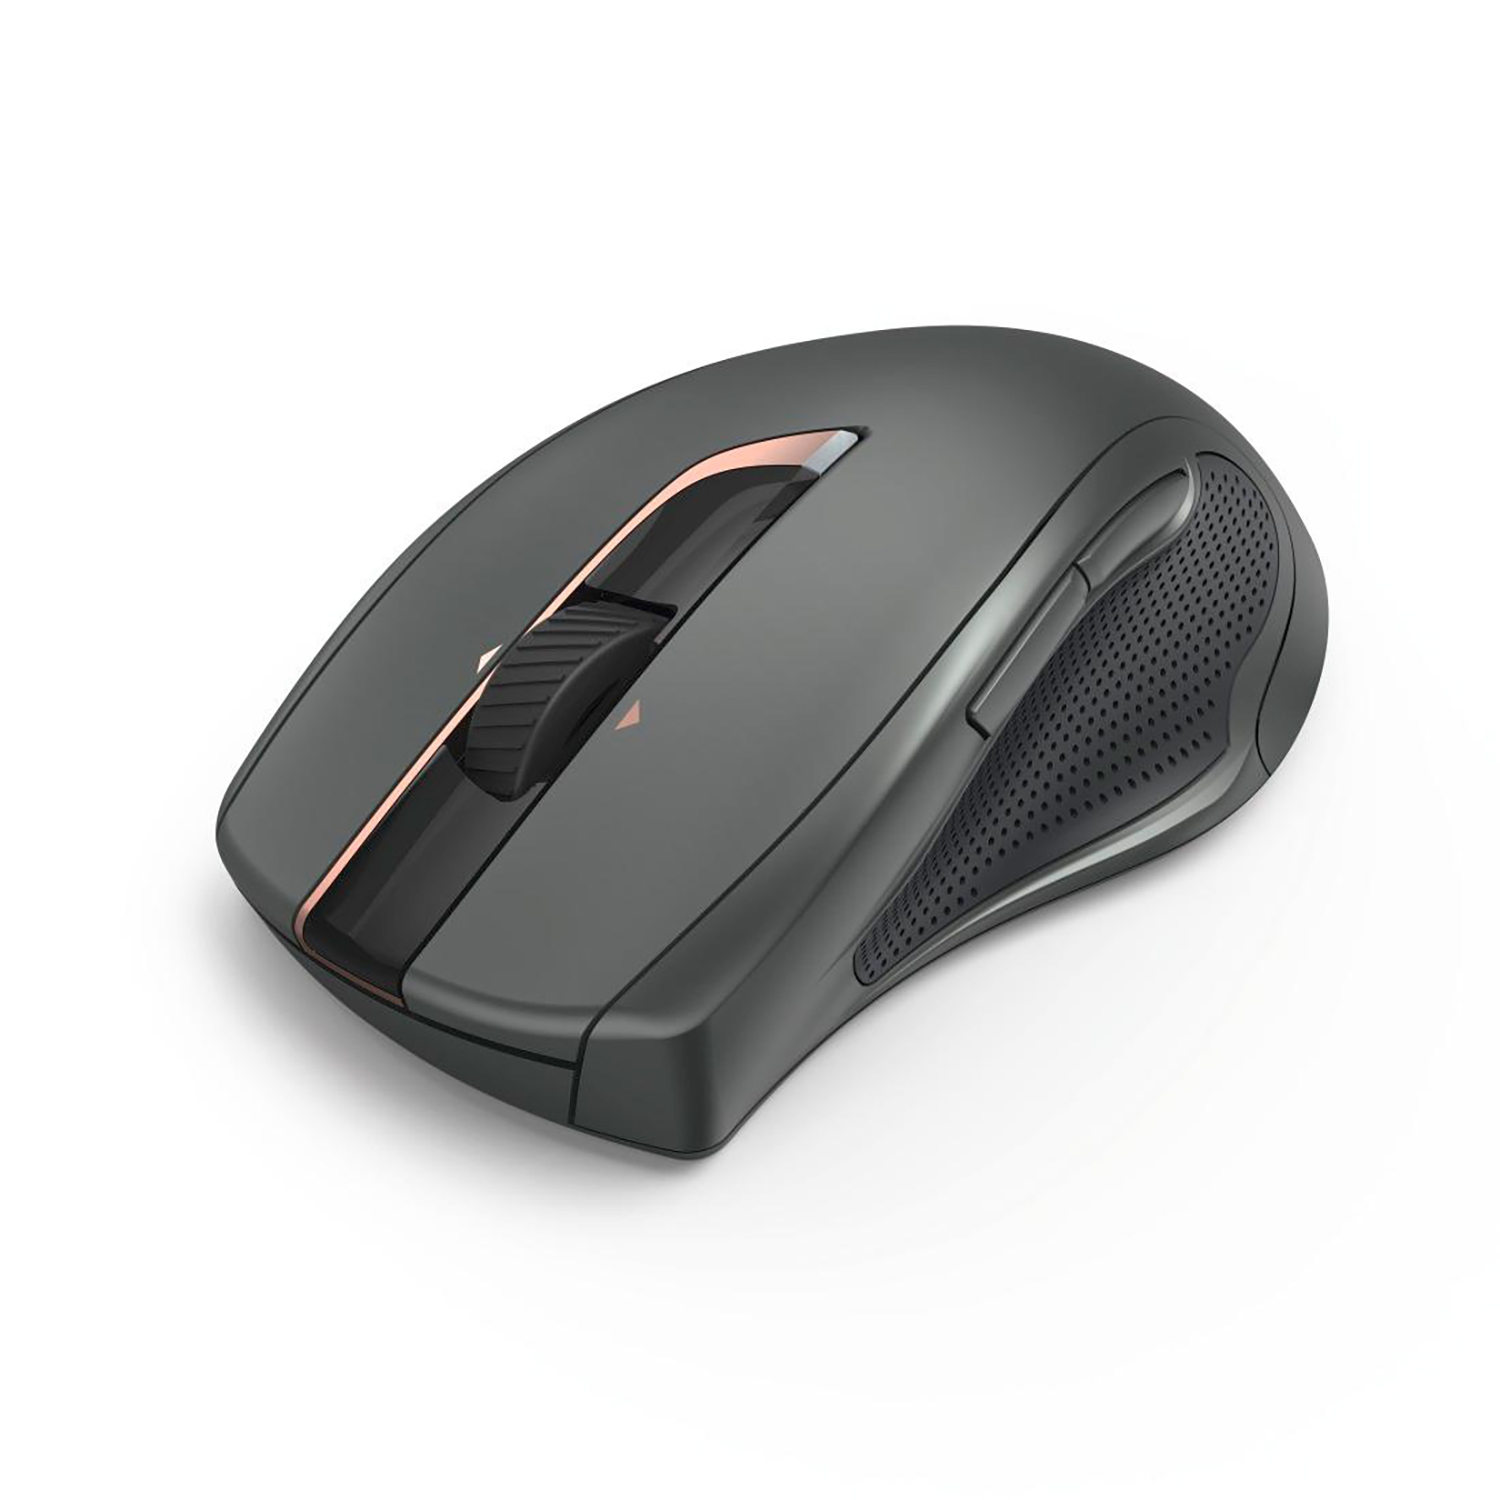 Hama Roma Mouse Optical Wireless 6 Button 1600dpi Right Handed Black Ref 00053879